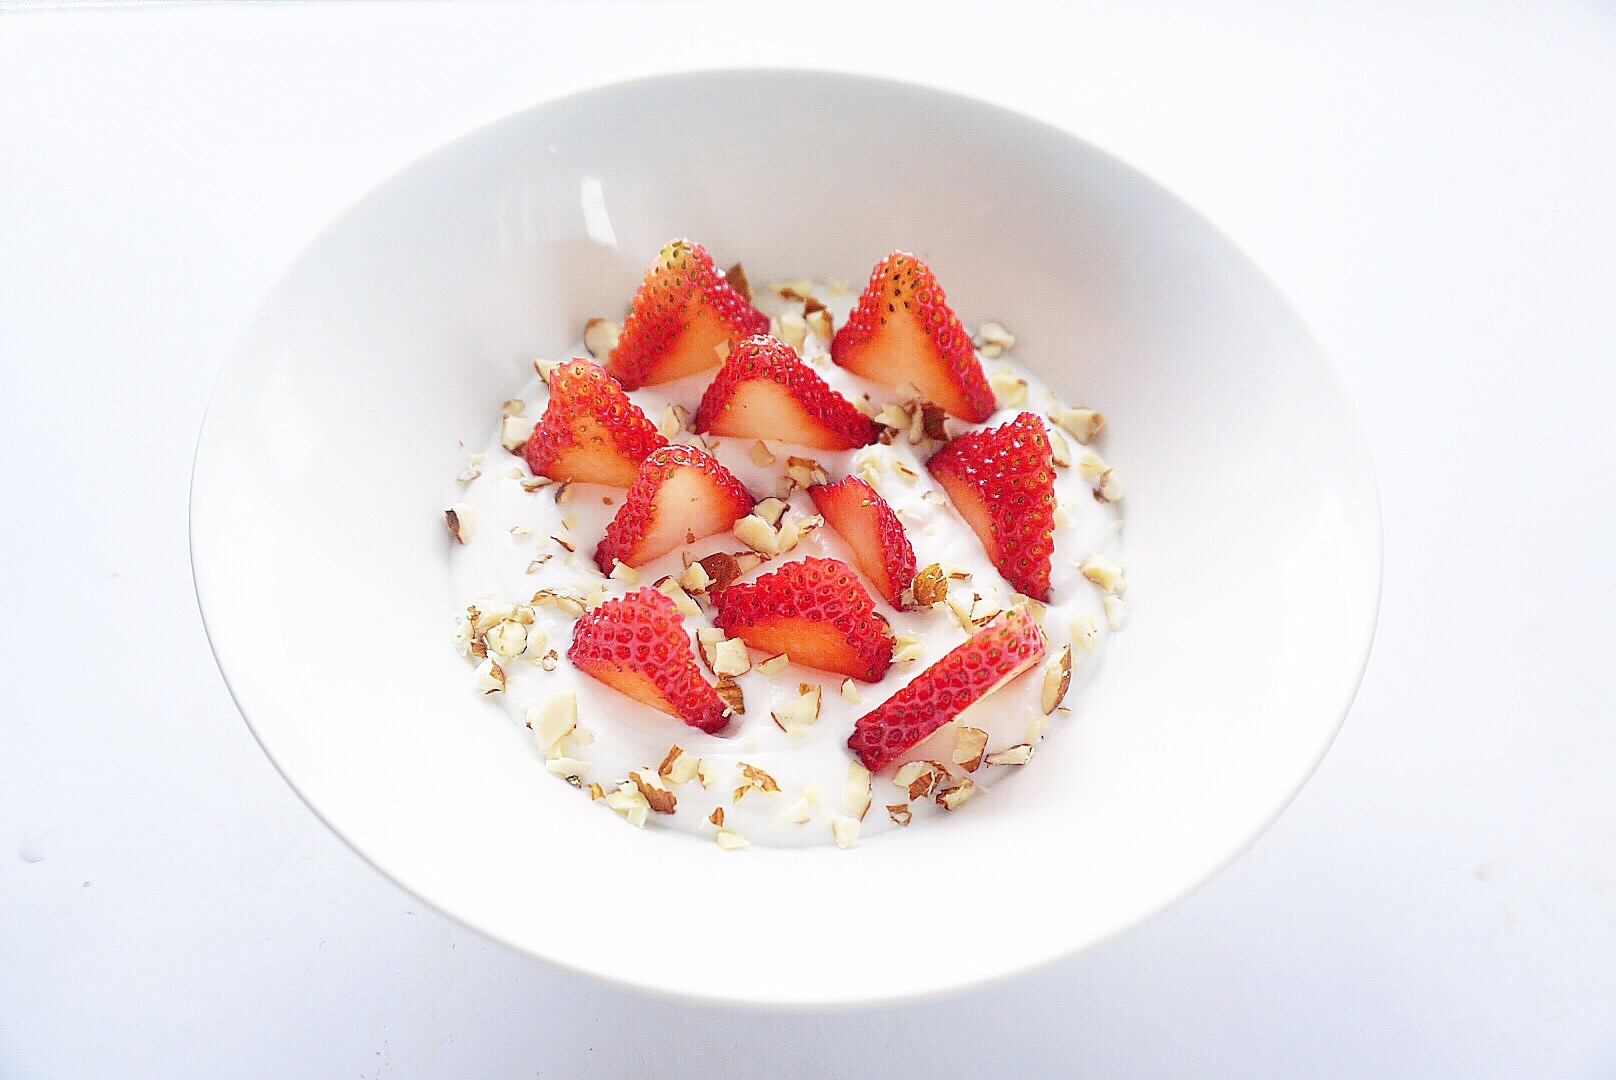 White bowl with strawberries and coconut inside